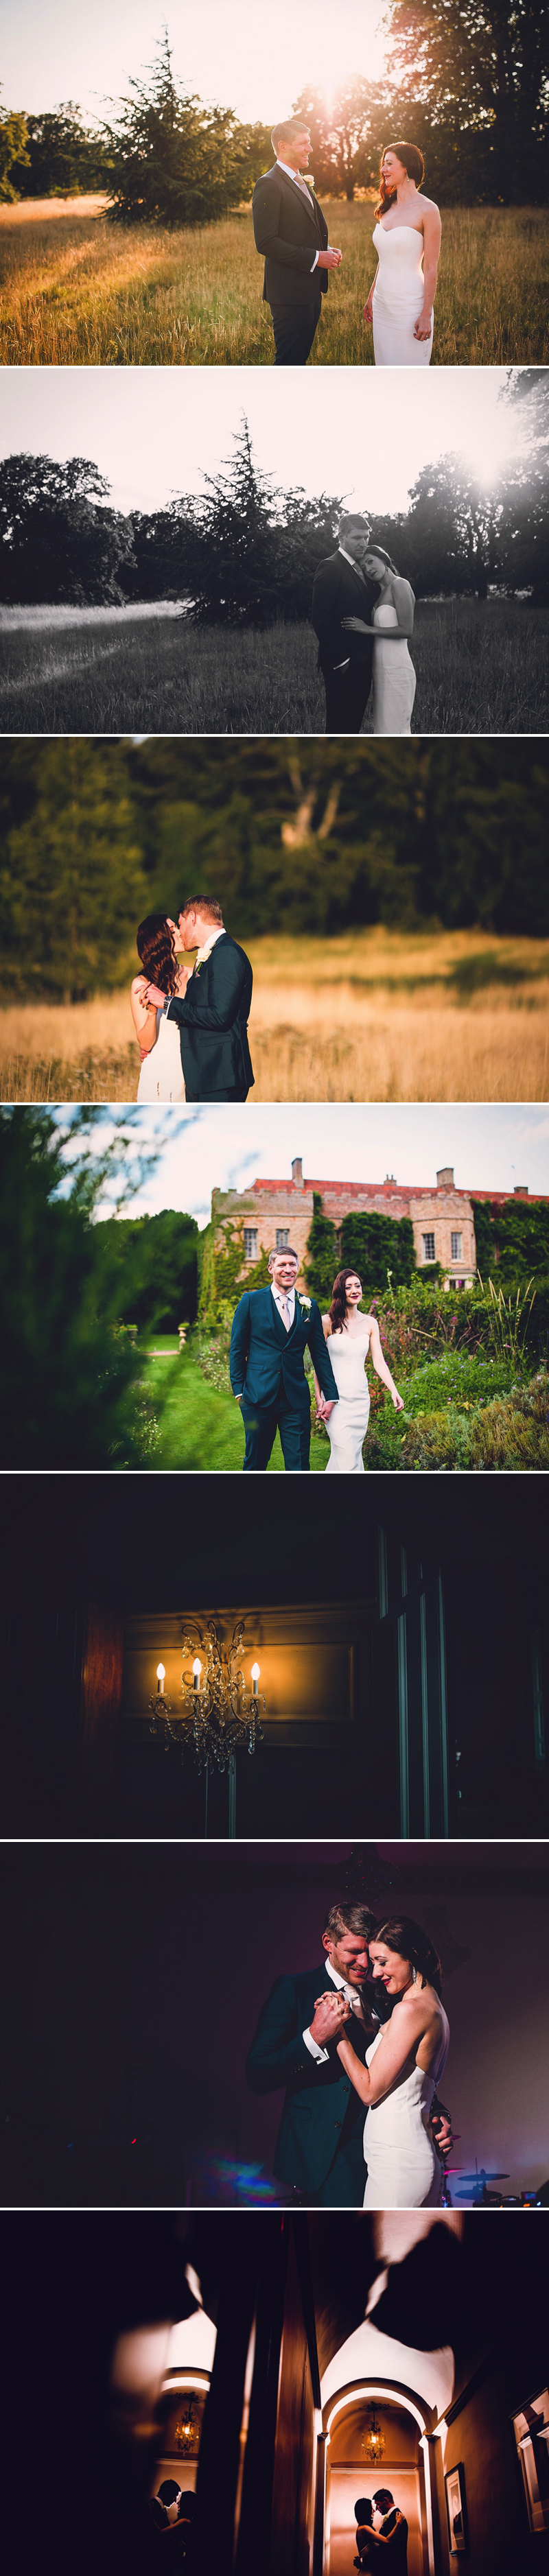 rustic-real-wedding-inspiration-narborough-hall-gardens-coco-wedding-venues-rob-dodsworth-photography-006